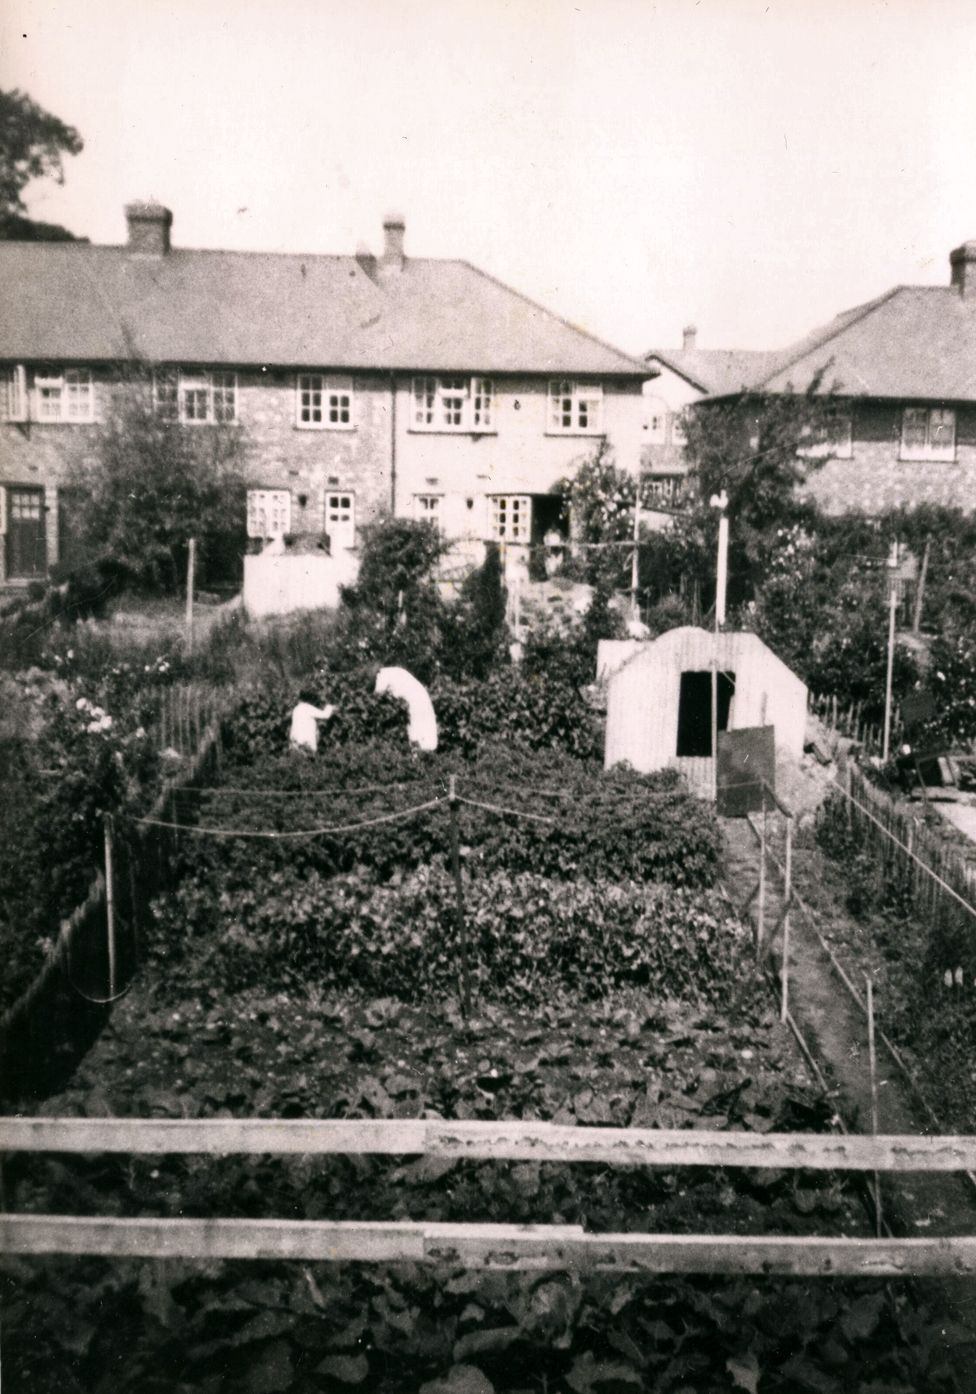 Freda Peach's mother and sister in their council house garden